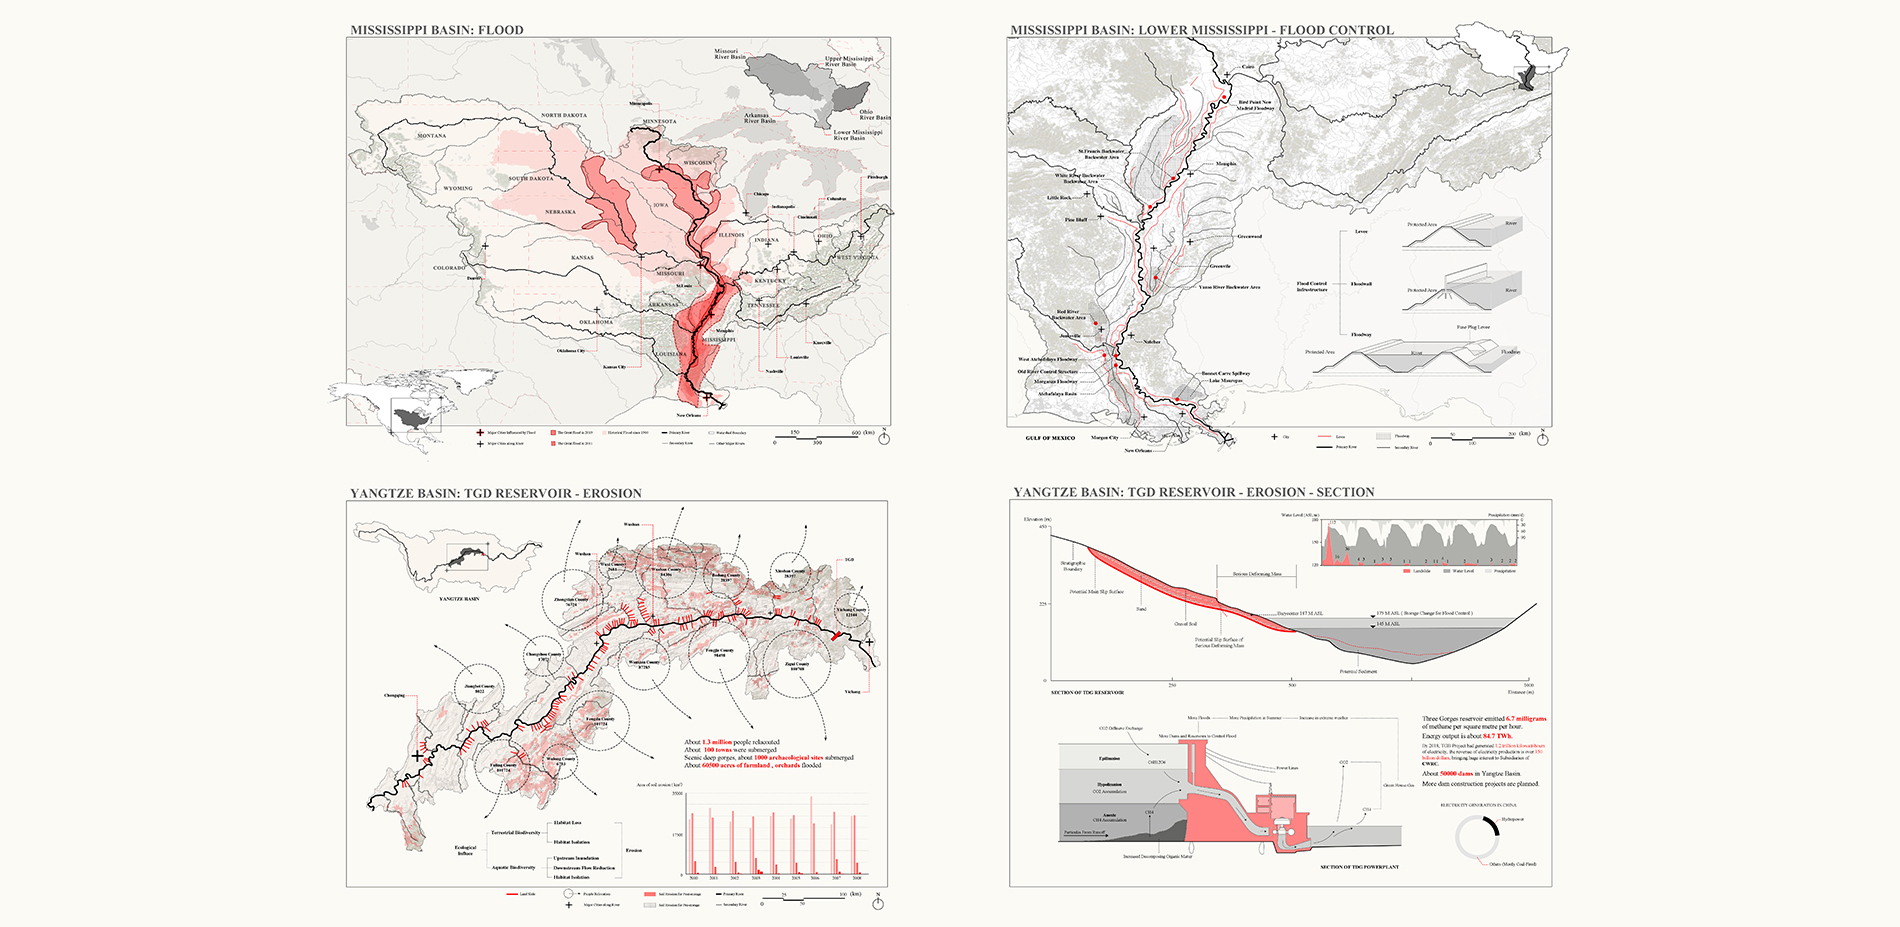 Infrastructures on rivers and flooding challenges